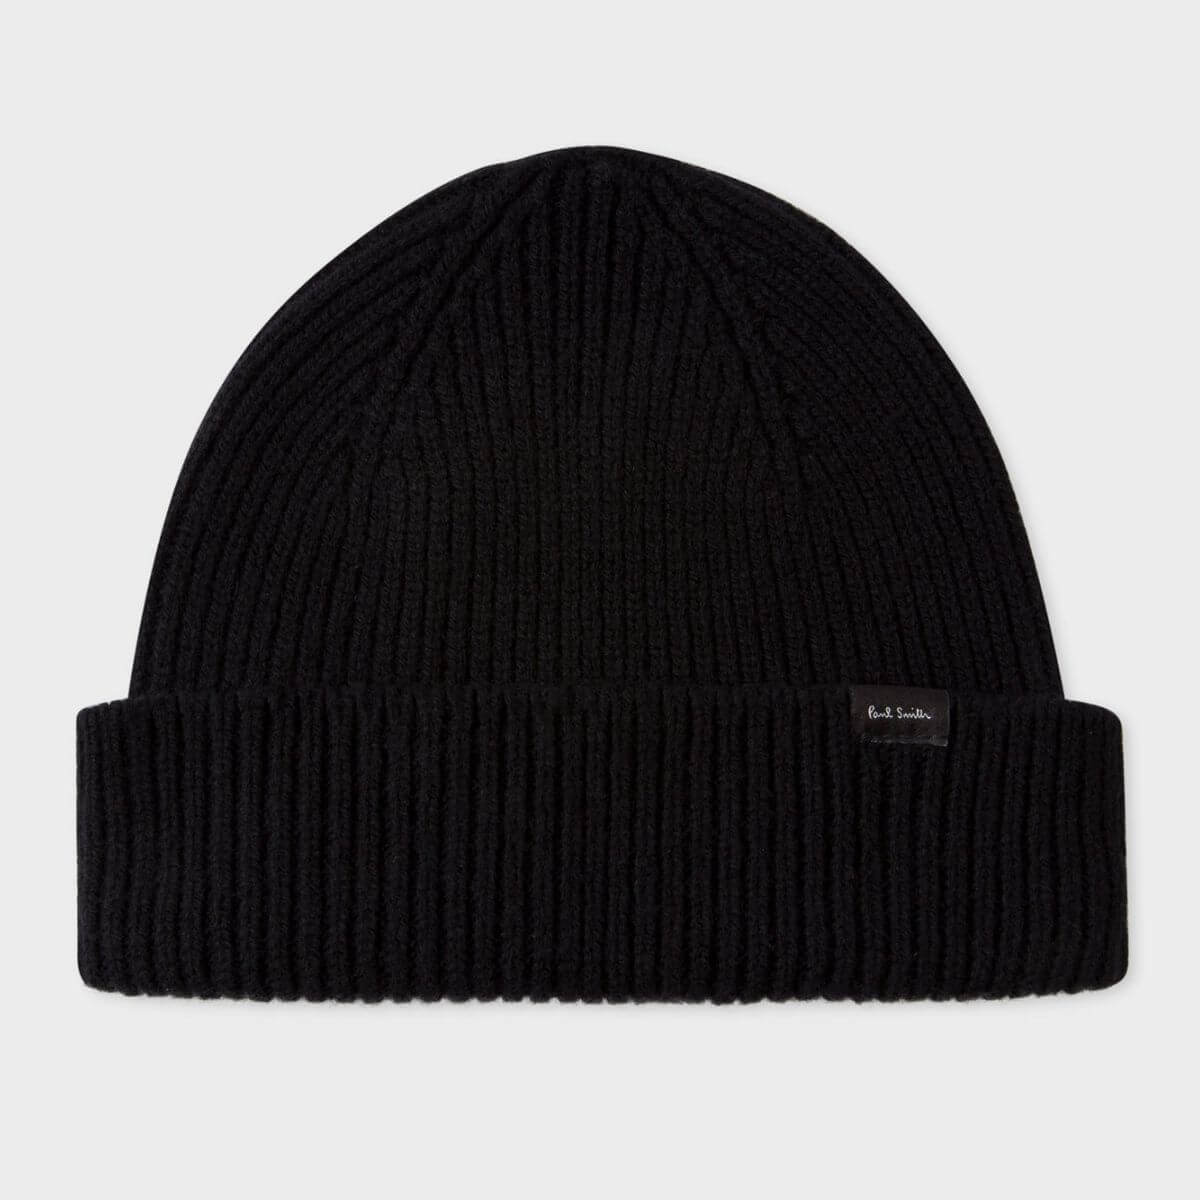 Paul Smith black beanie.